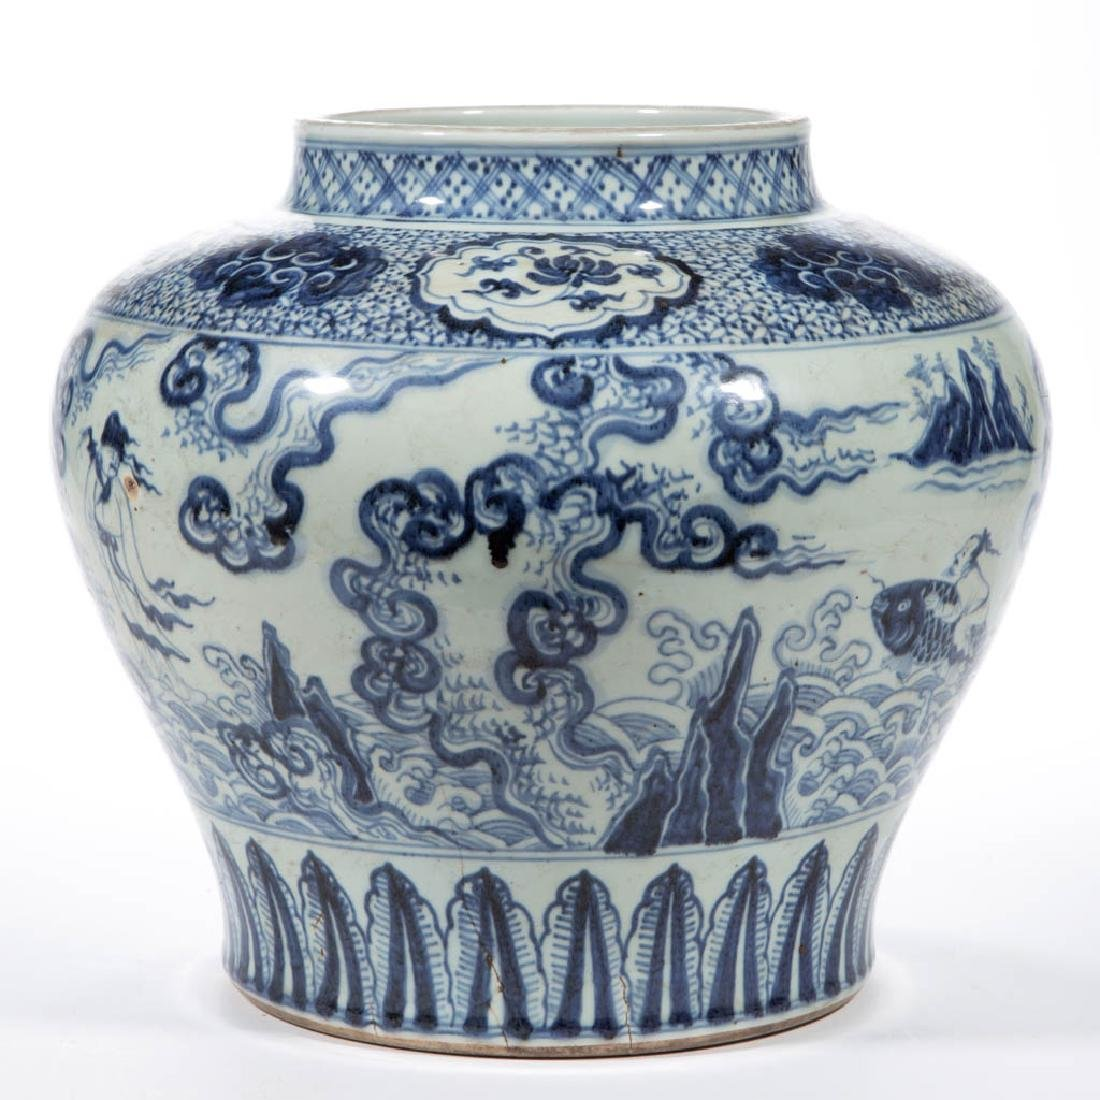 CHINESE EXPORT QING-STYLE PORCELAIN BLUE AND WHITE JAR - 3